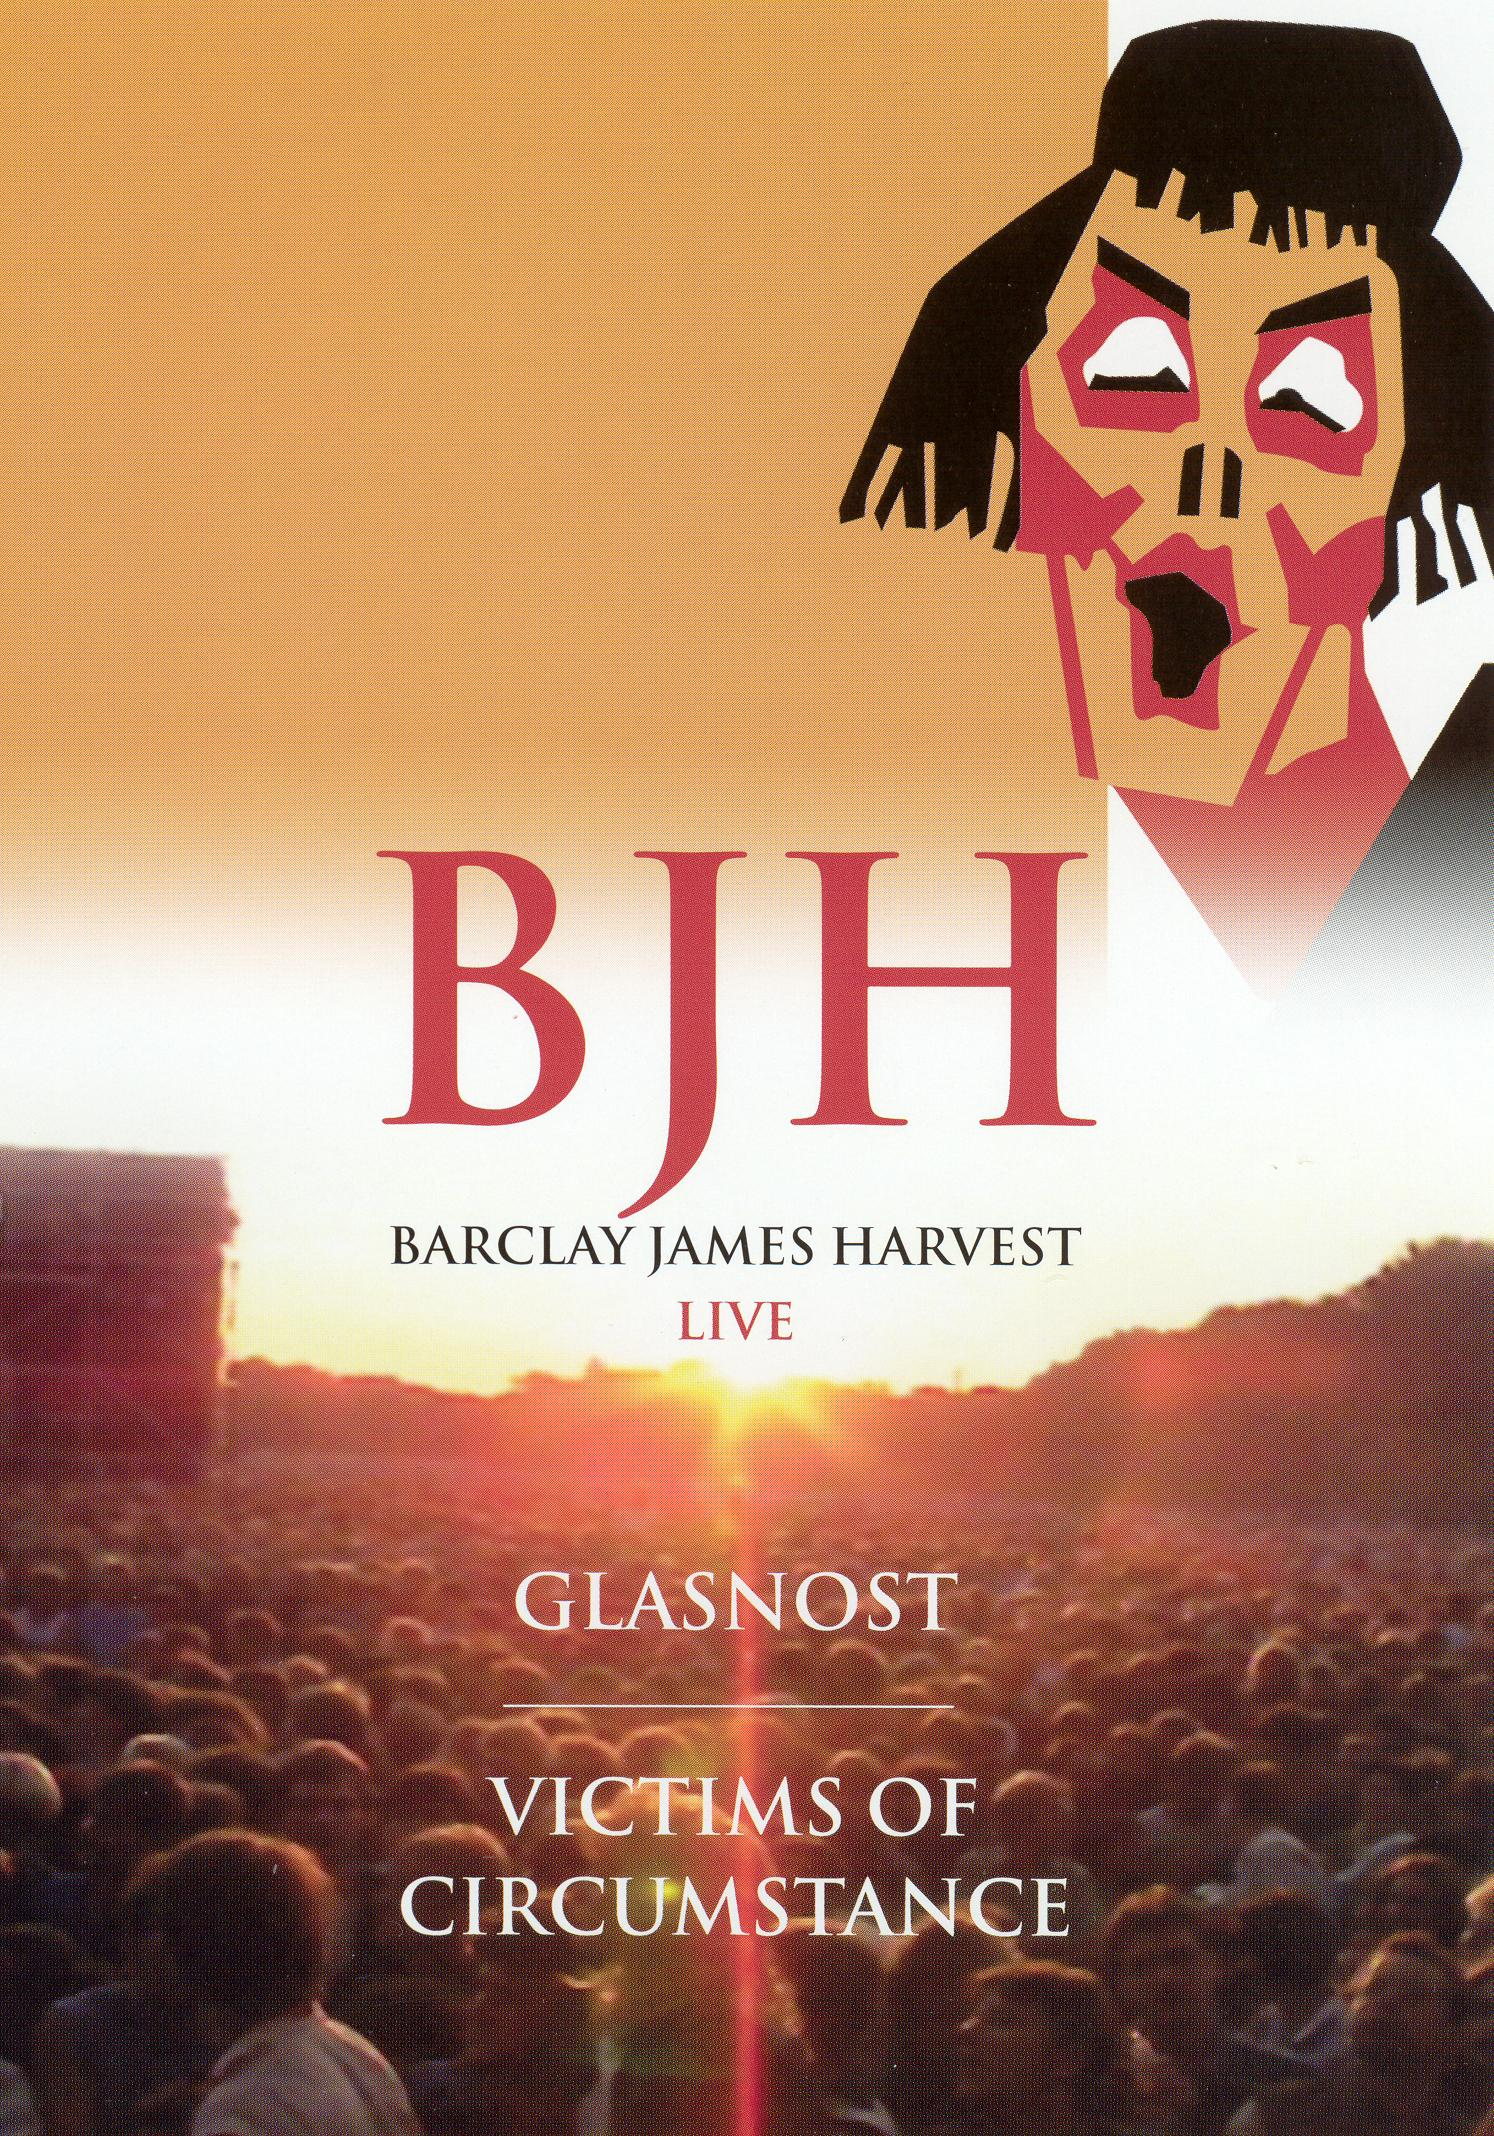 Barclay James Harvest: Glasnost/Victims of Circumstance